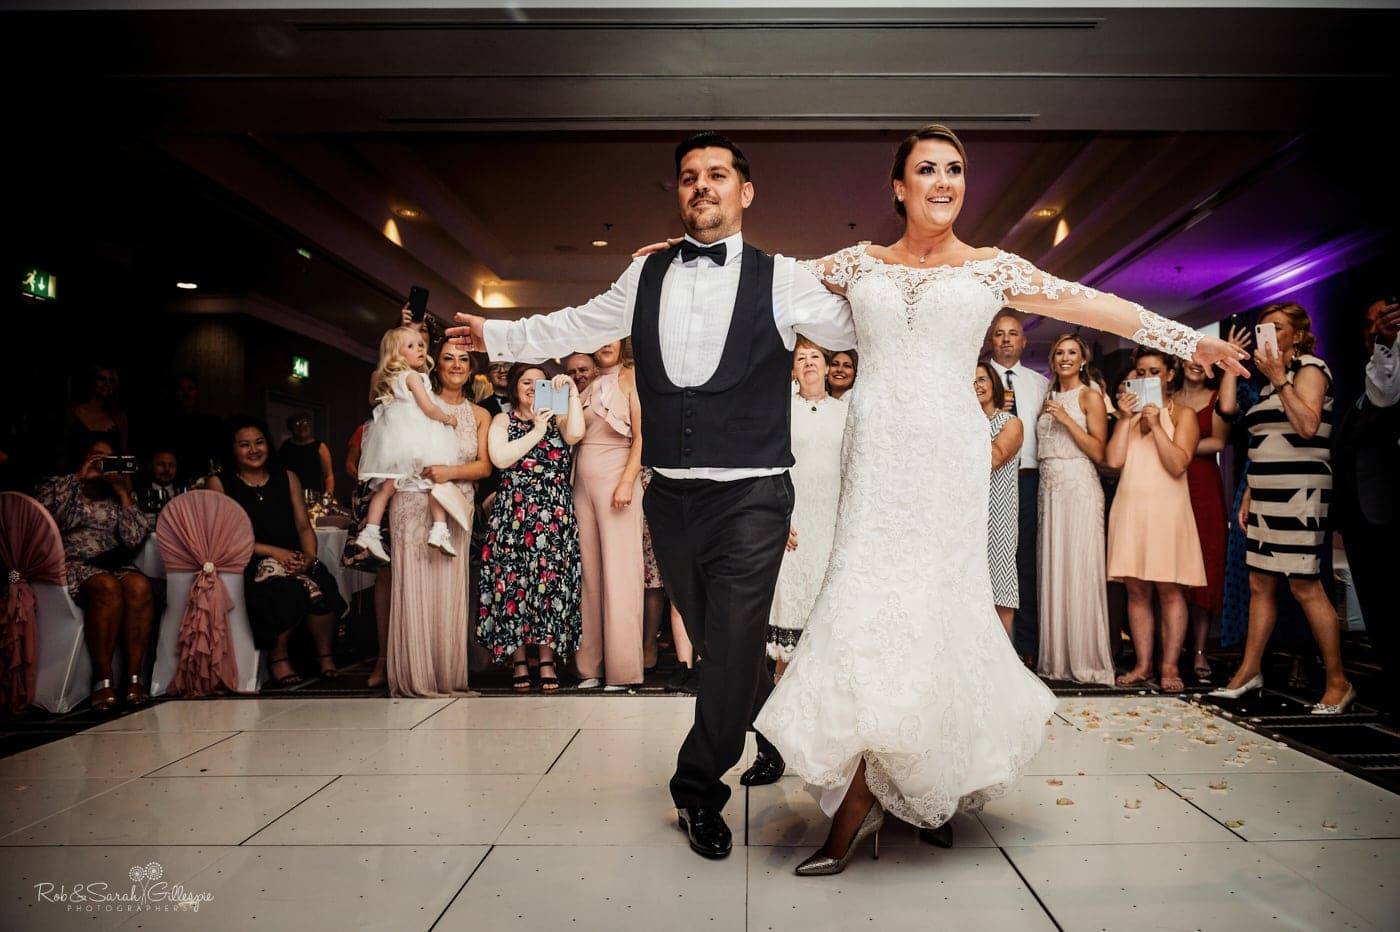 Bride and groom smiling as they perform first dance at wedding